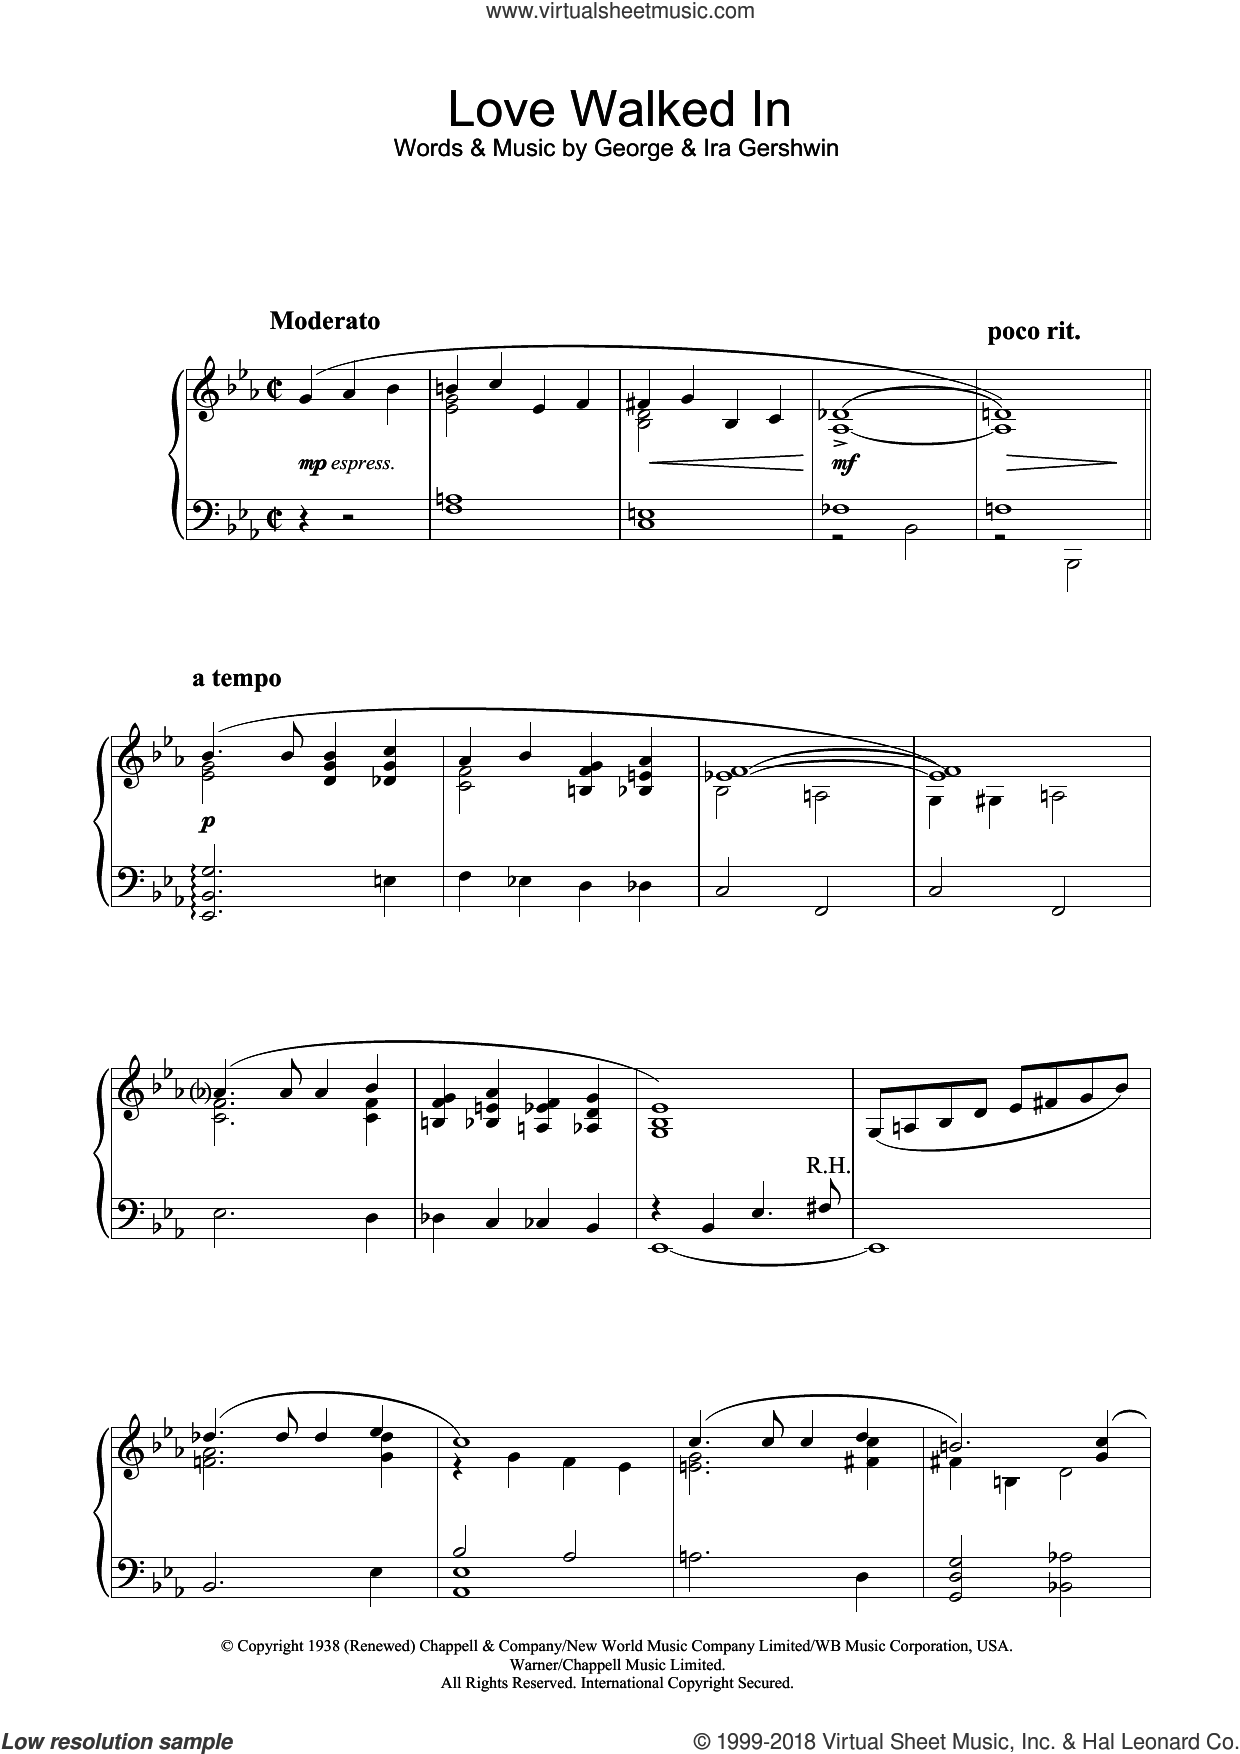 Love Walked In, (intermediate) sheet music for piano solo by George Gershwin, GEORGE and Ira Gershwin, intermediate skill level